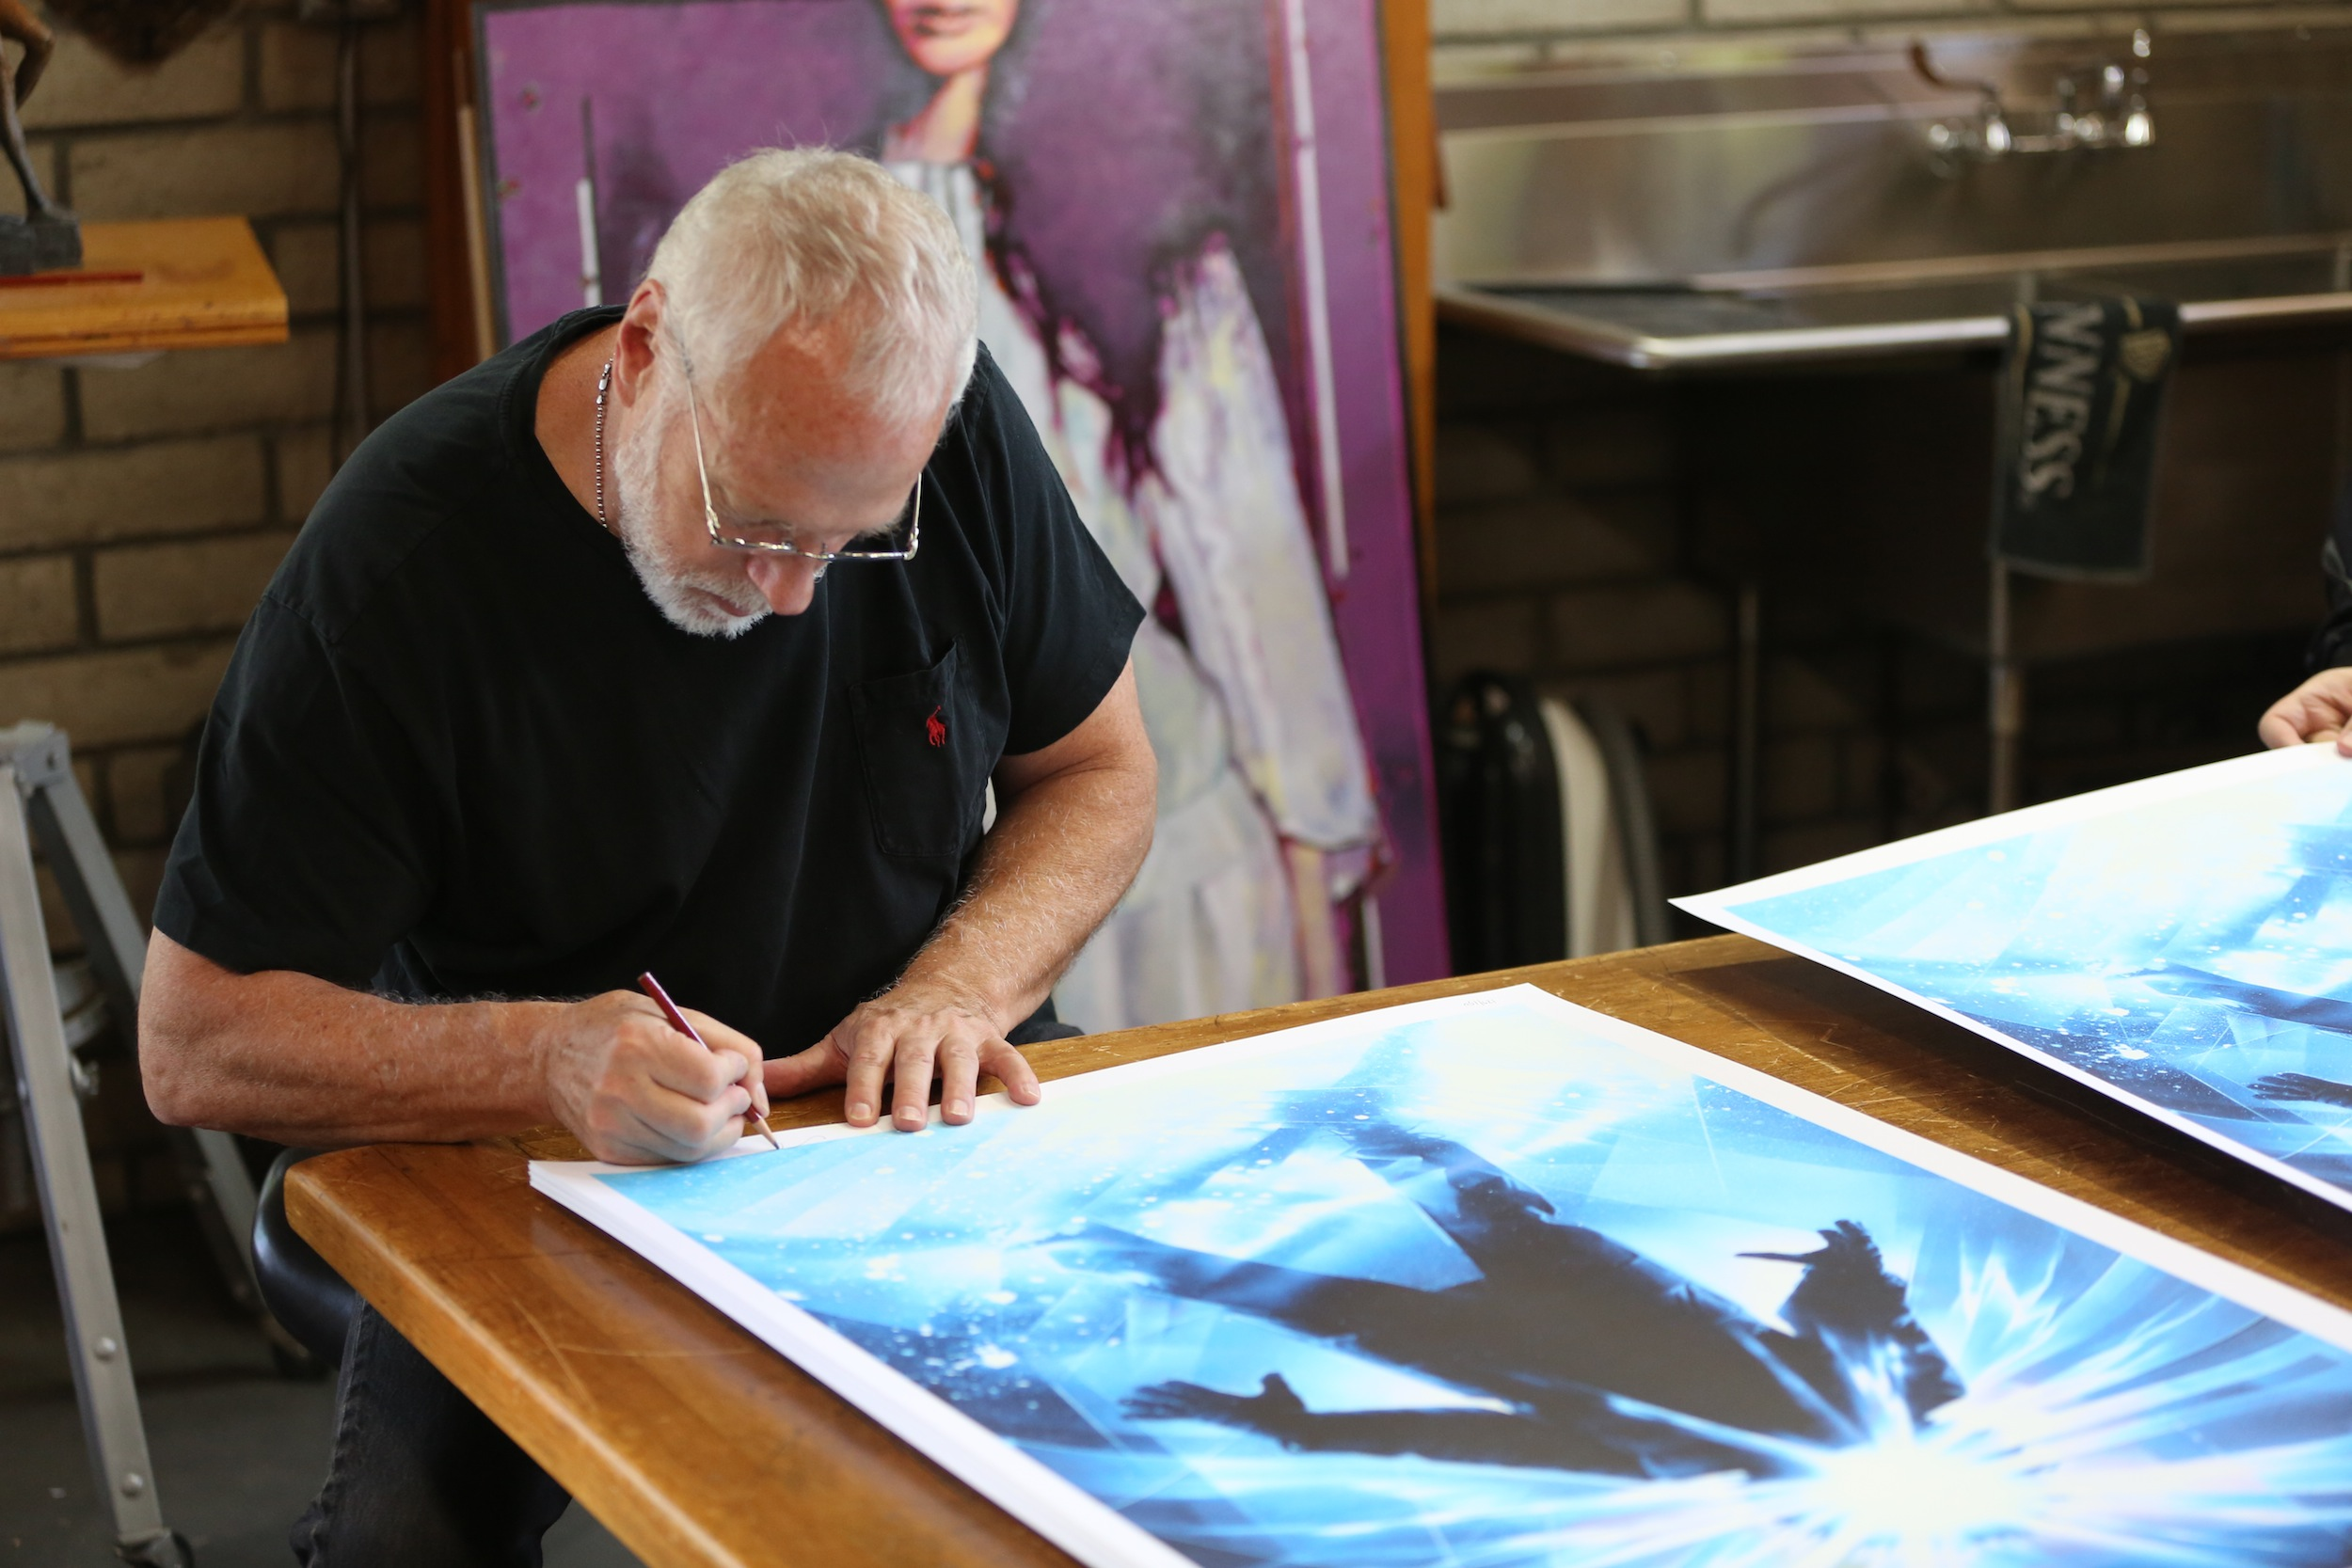 mondo struzan signing Best of the Week: Twilight and Jurassic Park Reboot Chats, Obscure DVDs and More